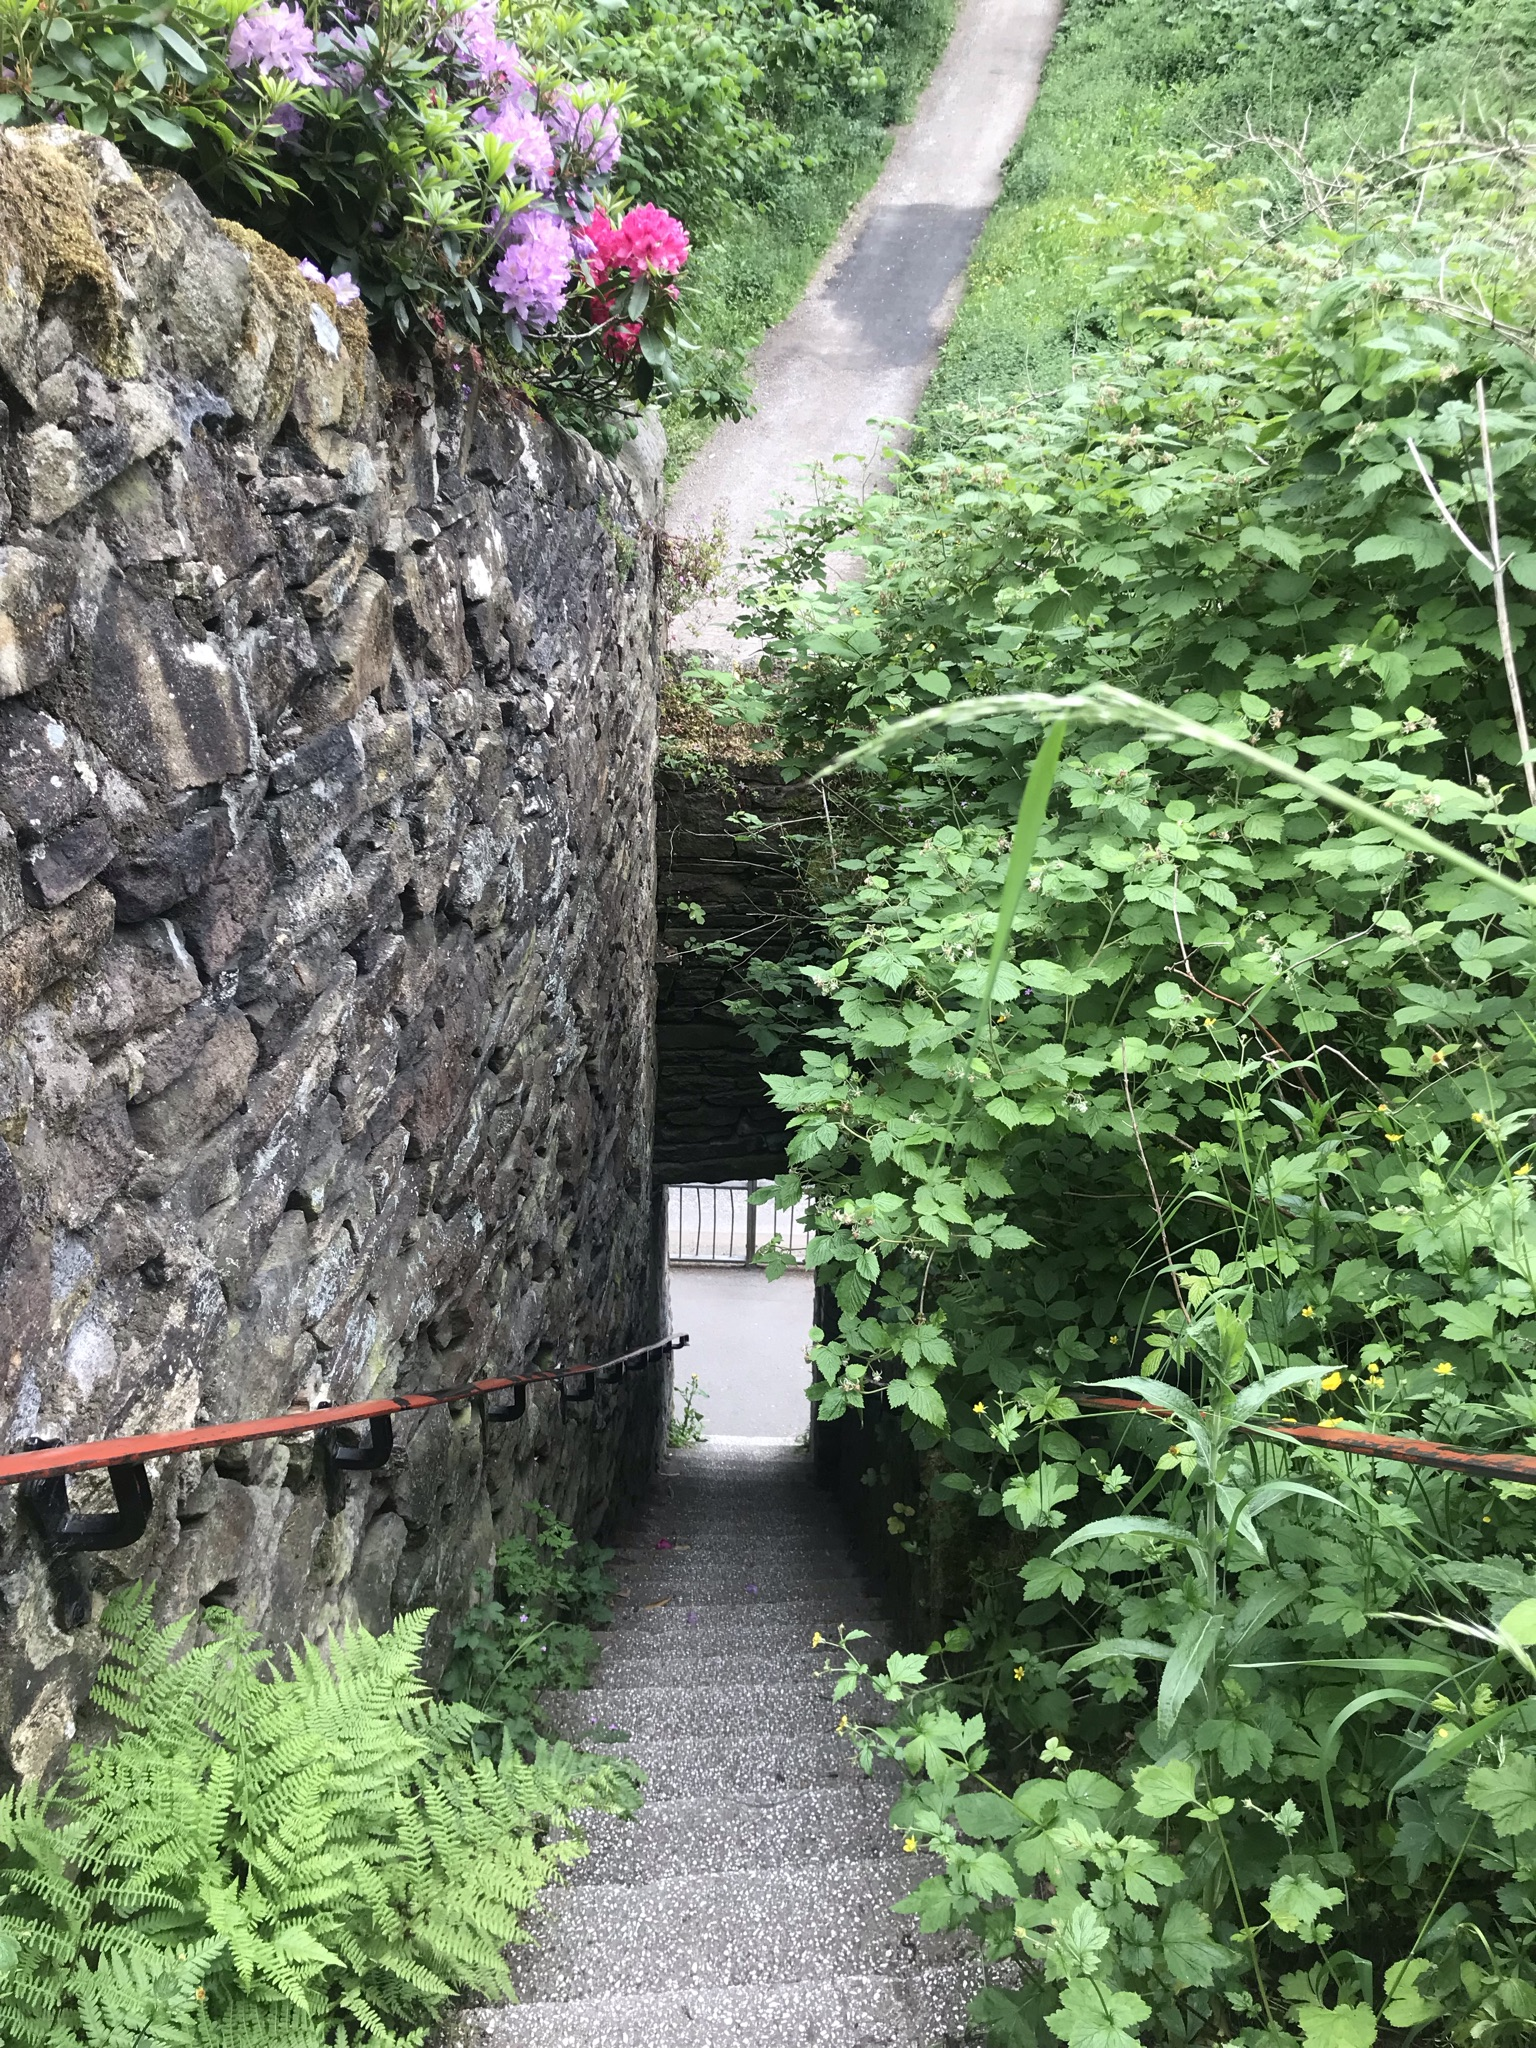 VERY steep steps with a stone wall on one side and greenery on the other head down to a road.